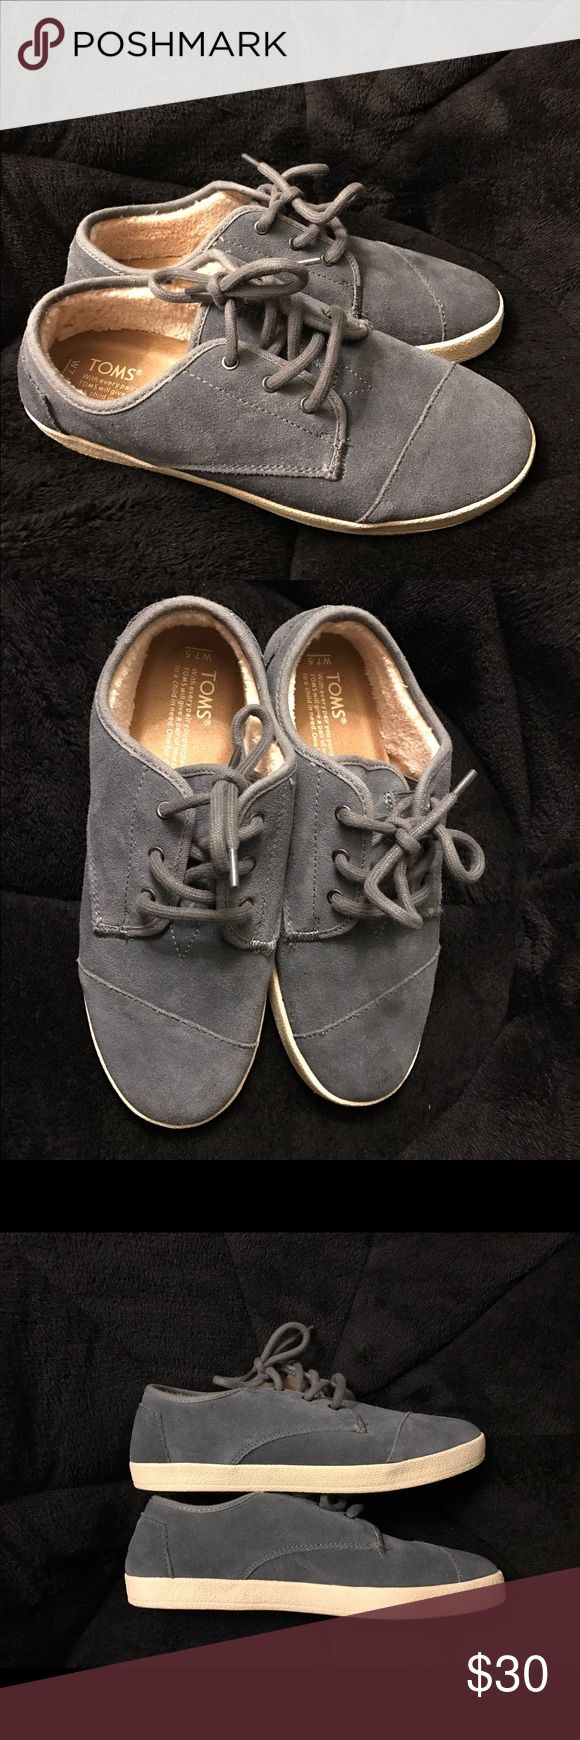 Toms suede gray size 7.5W New gray suede toms size 7.5W ...fuzzy inside which makes them very warm. New but have no tags and no box. TOMS Shoes Sneakers